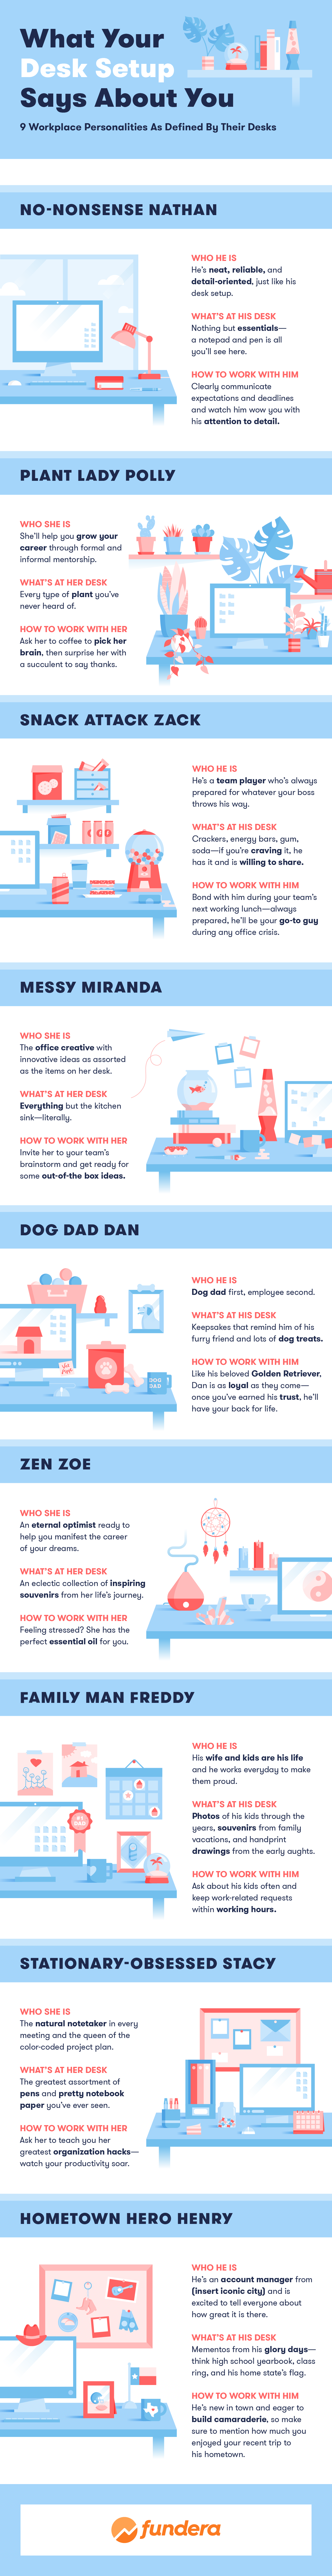 9 Workplace Personalities as Defined by their Desks [Infographic]